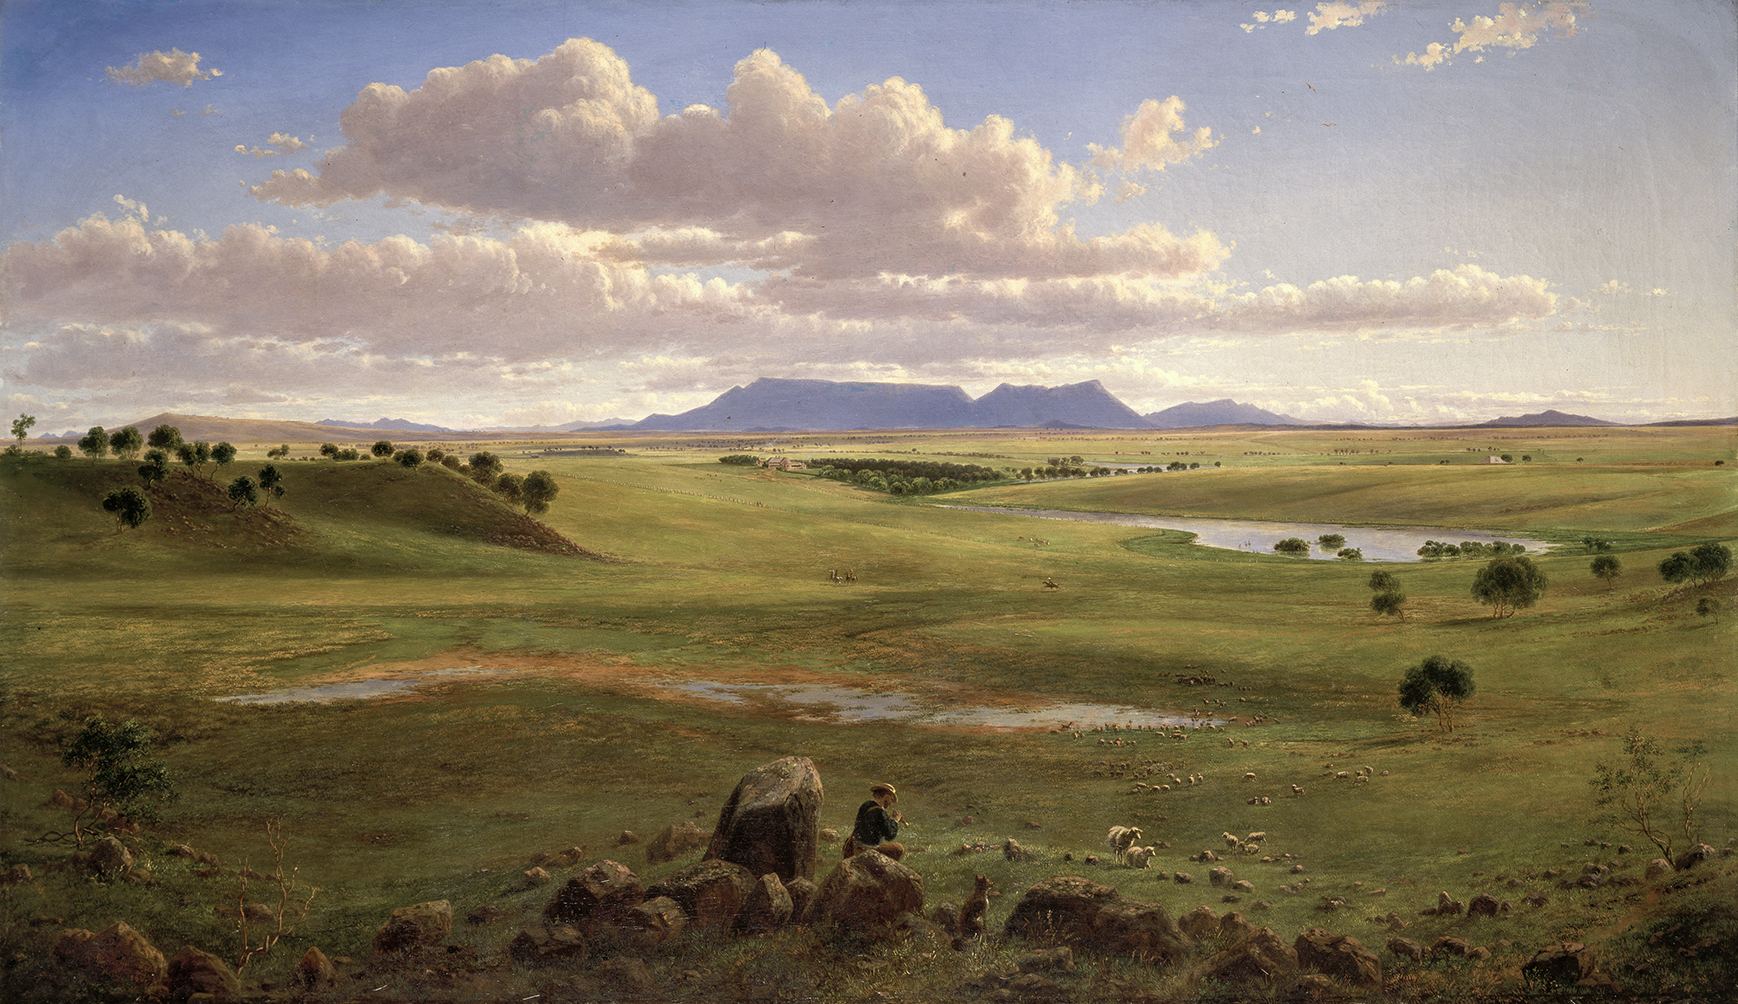 An oil painting: A shepherd and his flock sit on a stone wall in the foreground and look across a wide view of green pastural land. The shadow of a mountain sits on the distant horizon.